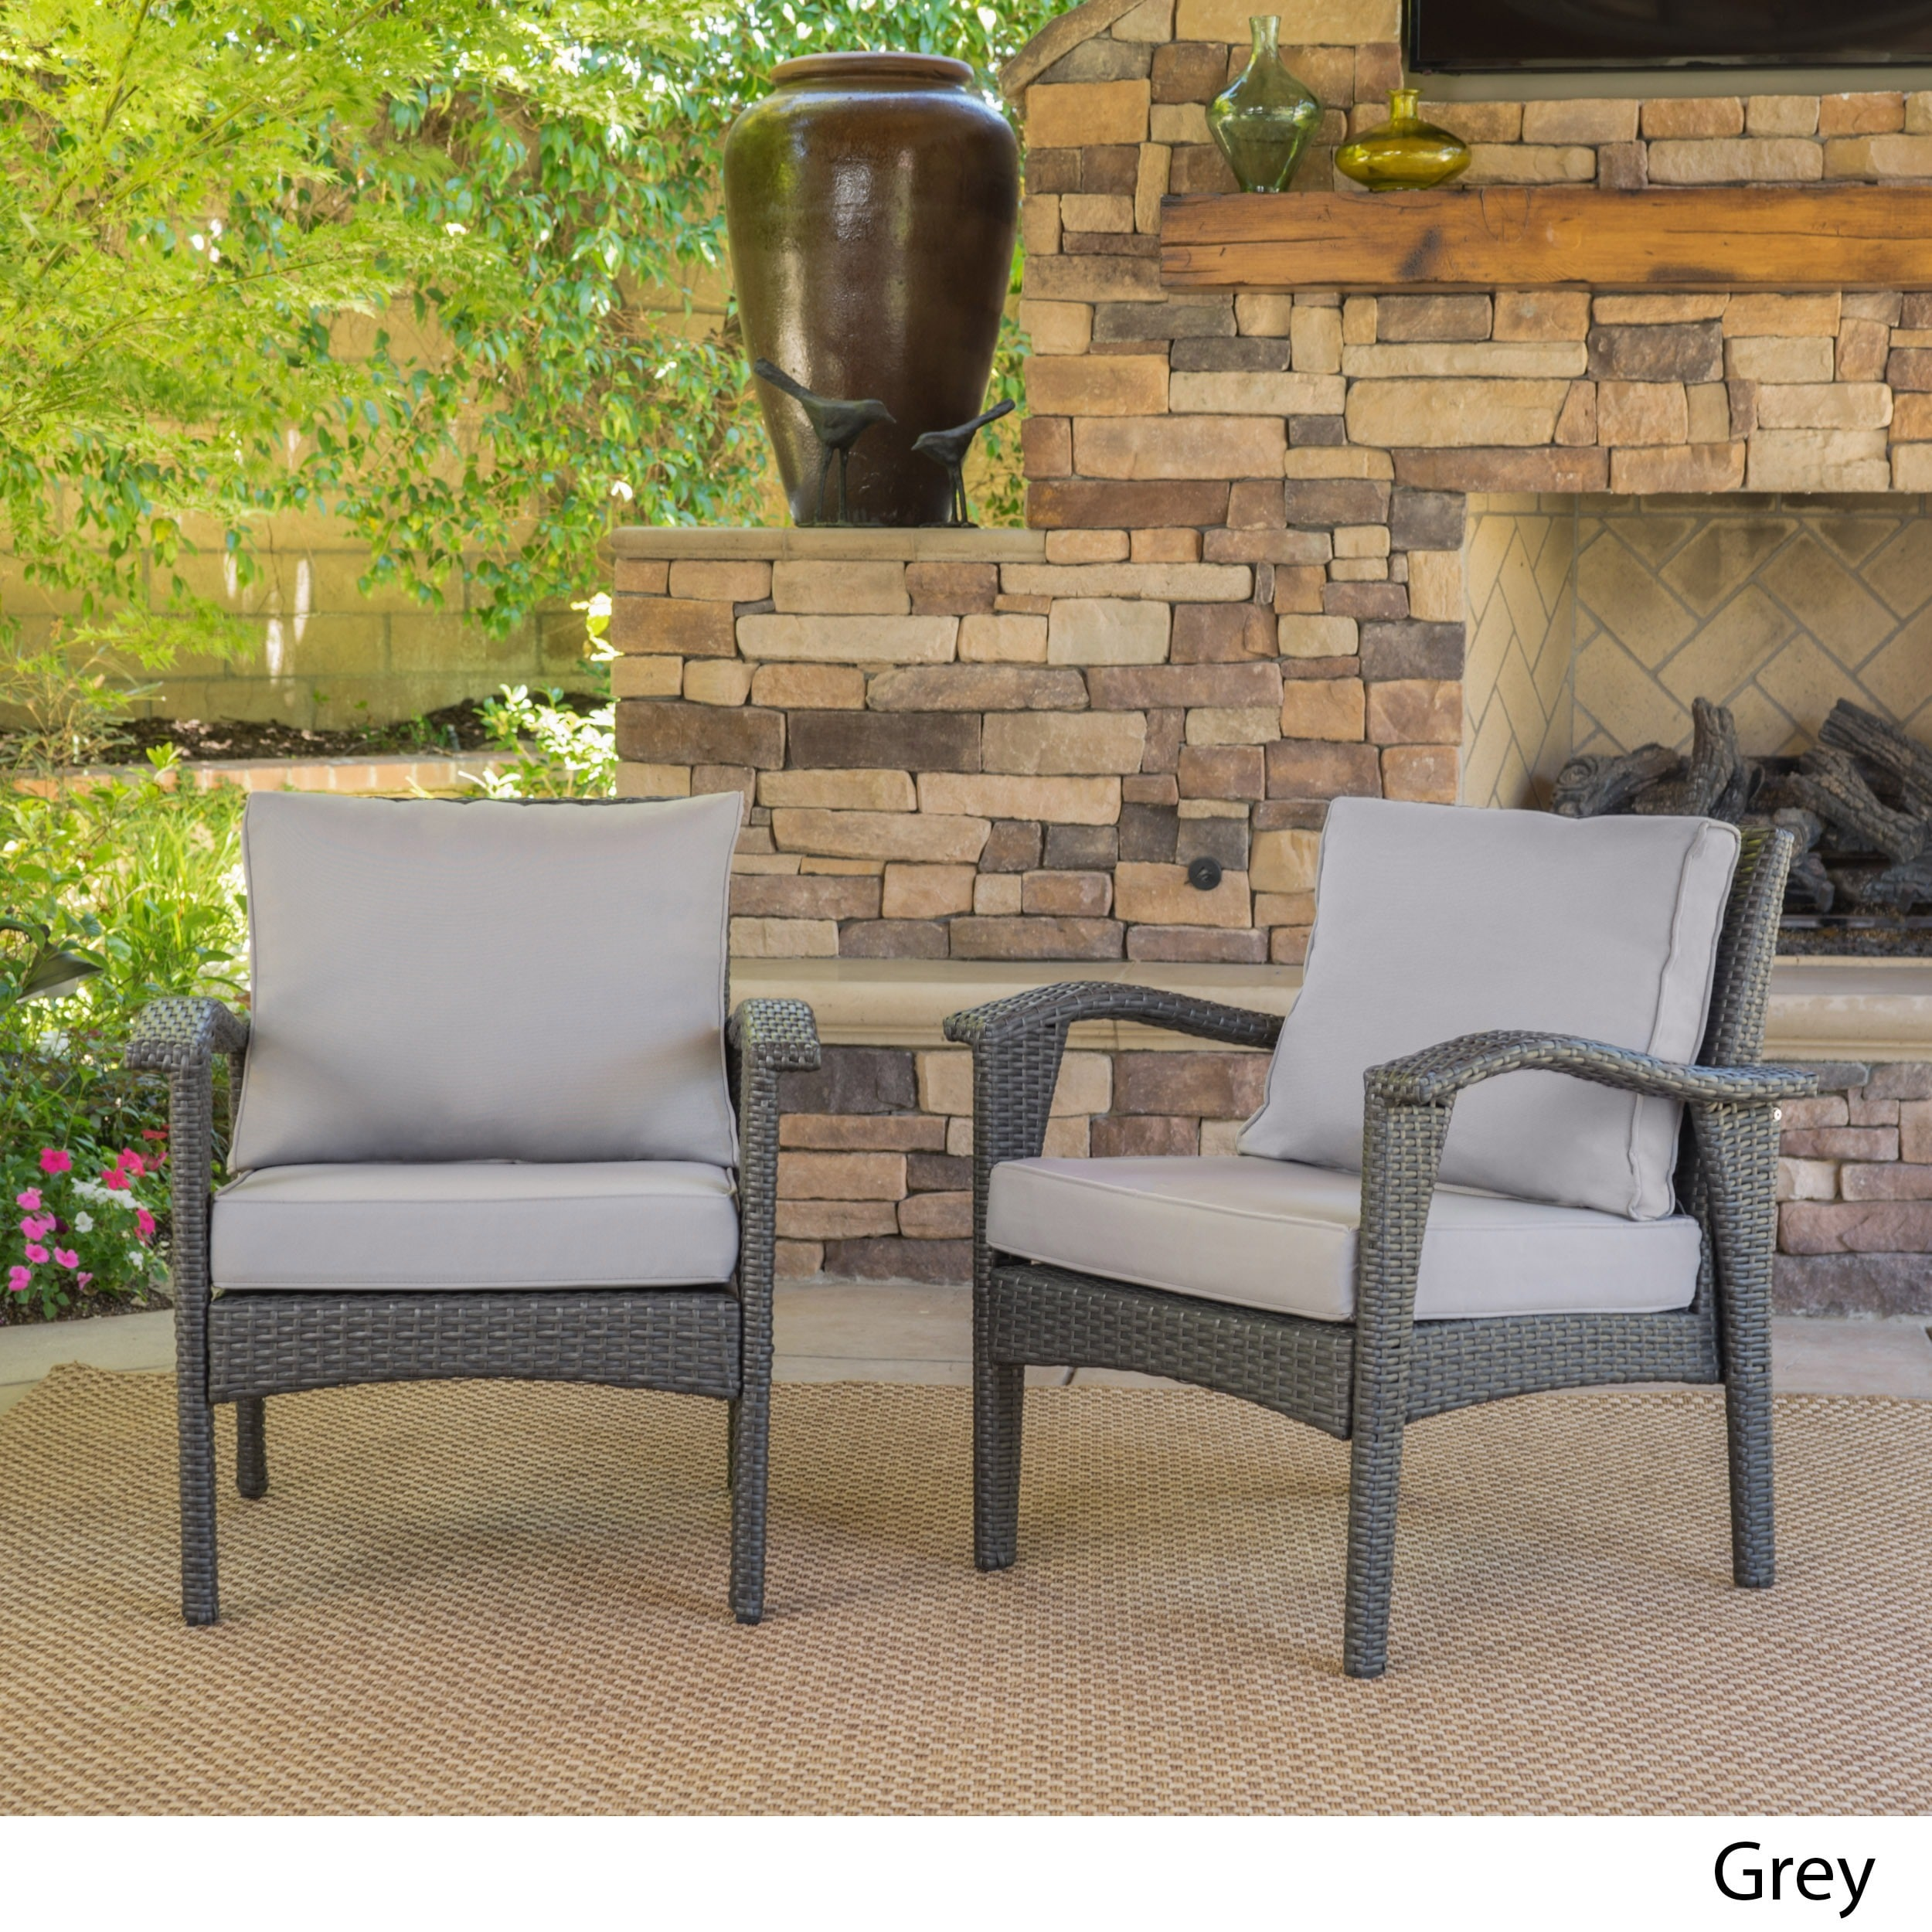 Shop Honolulu Outdoor Wicker Club Chair With Cushion (Set Of 2) By  Christopher Knight Home   On Sale   Free Shipping Today   Overstock.com    11200565